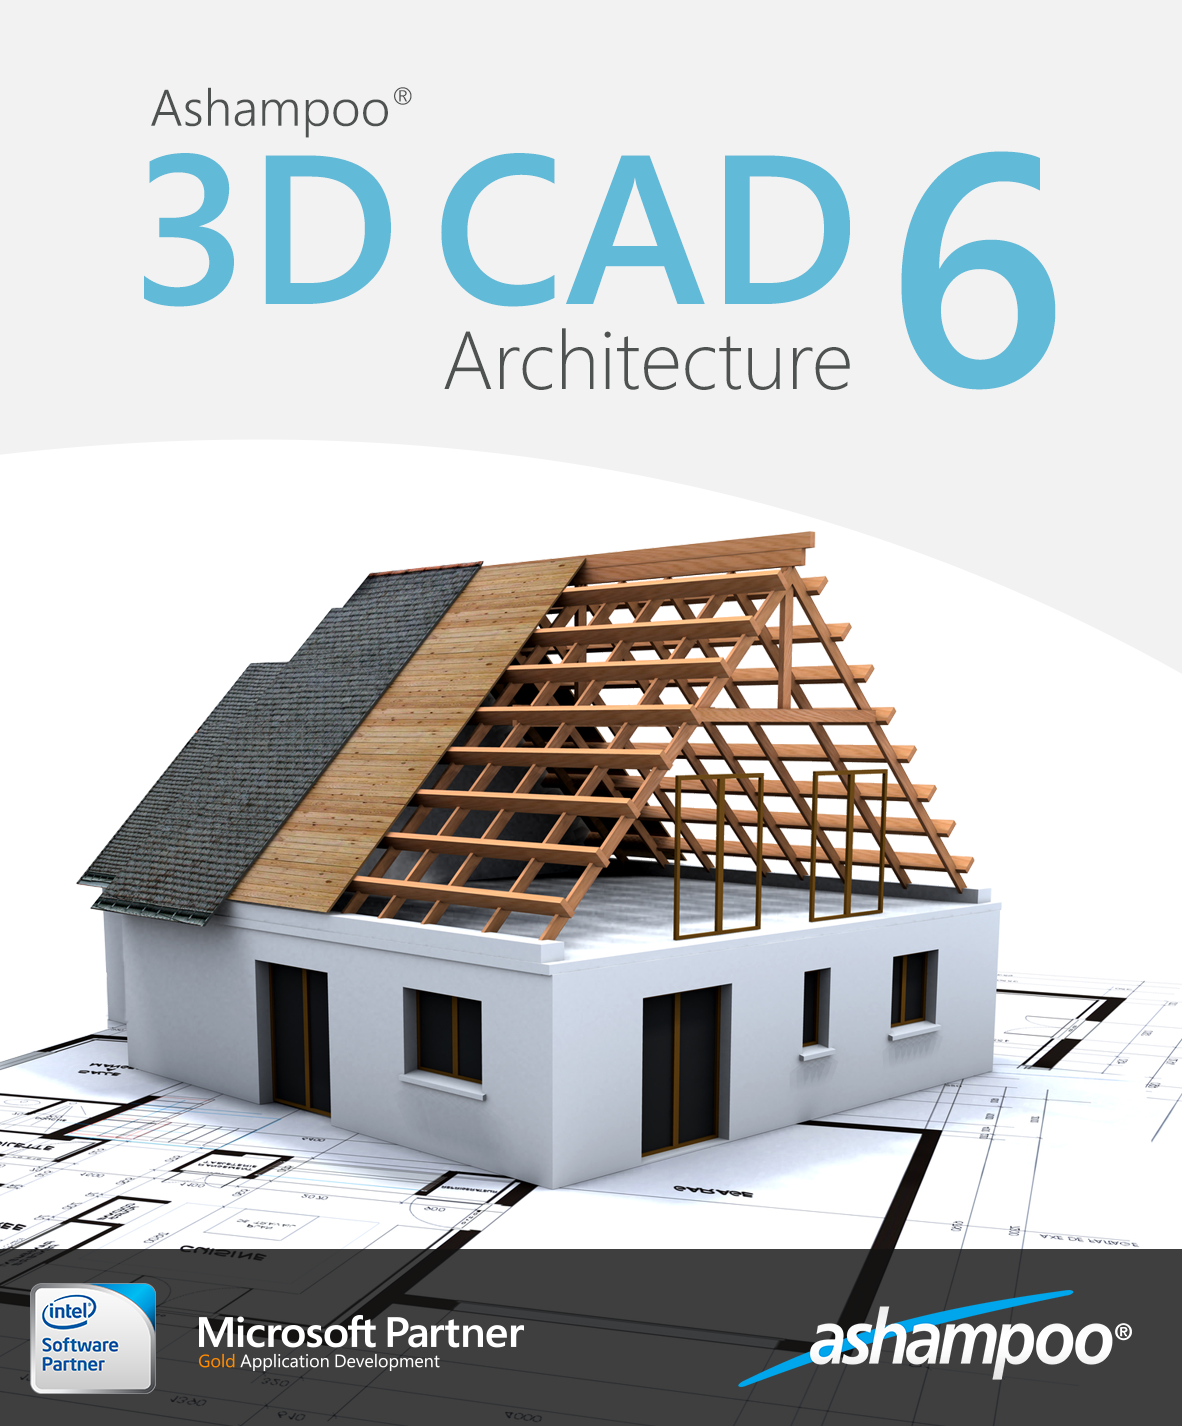 Compare Price To House Cad Software